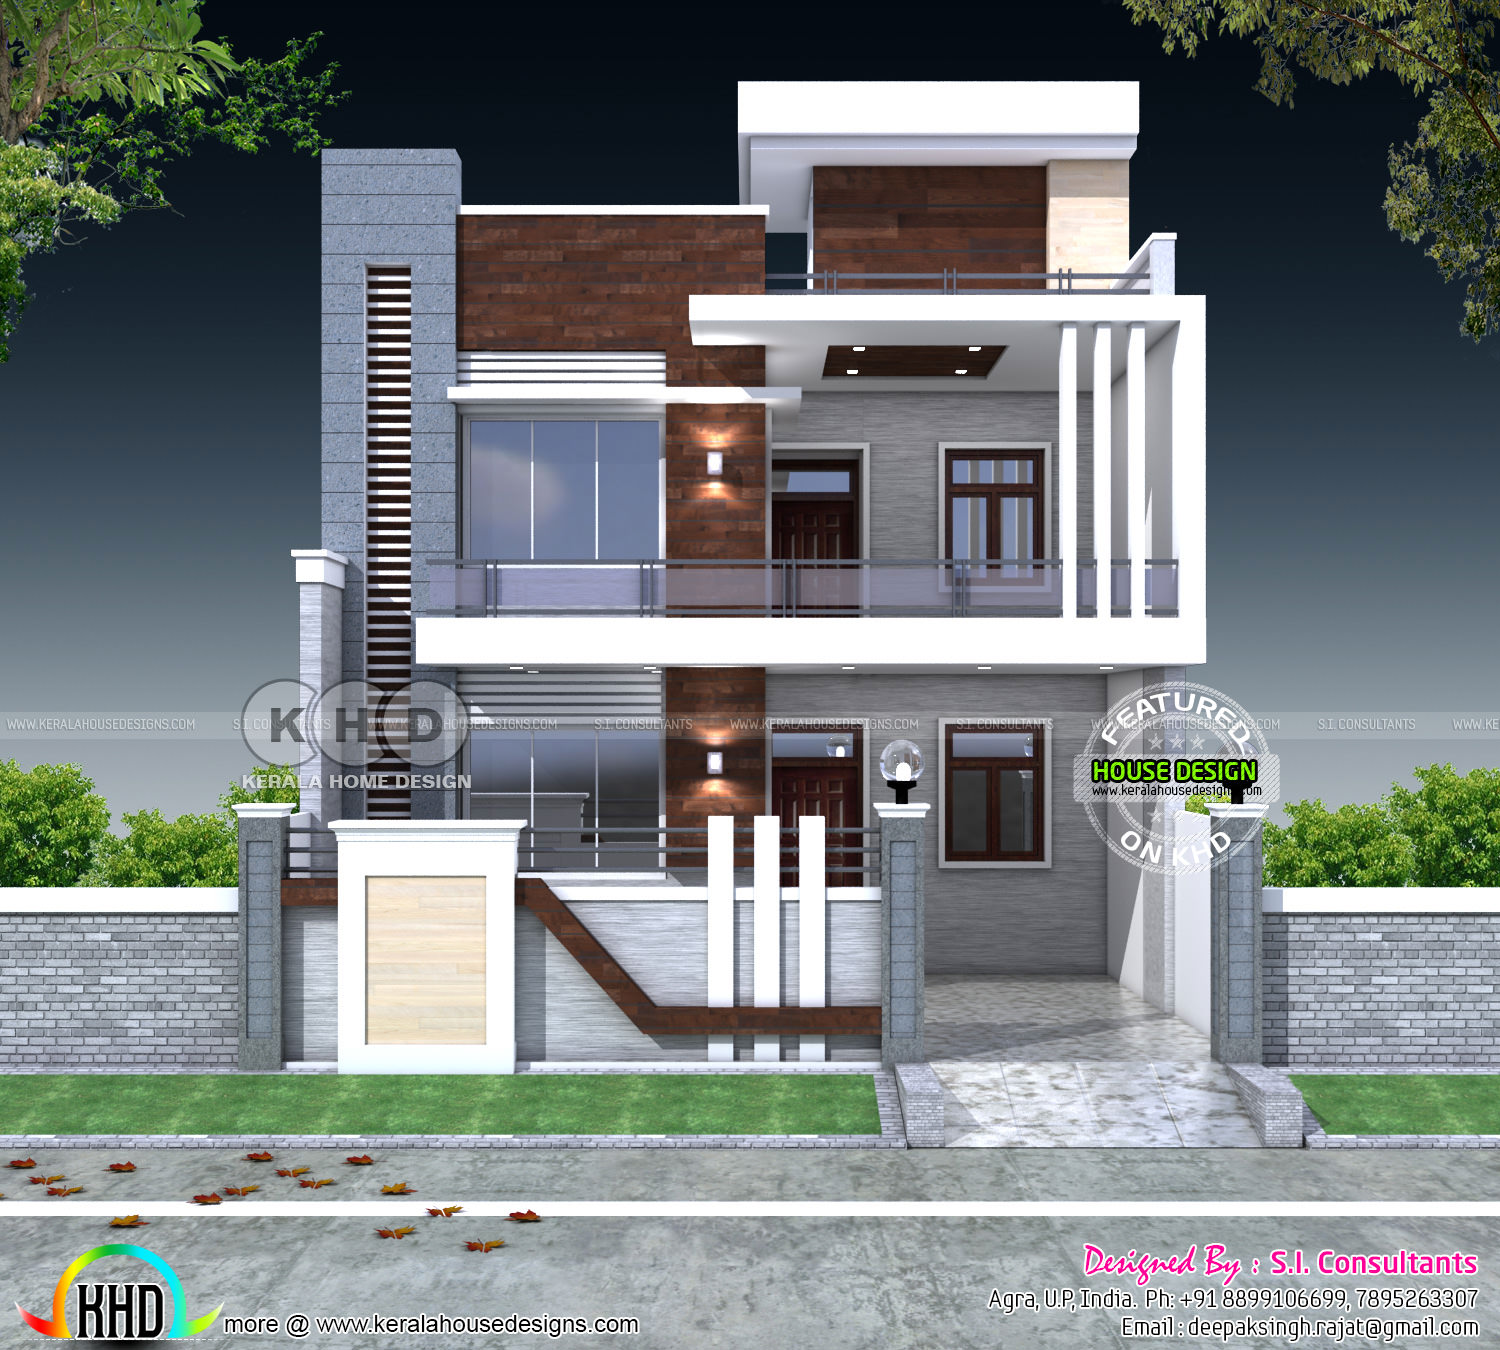 5 bedroom flat roof contemporary india home kerala home design and floor plans - House of design ...